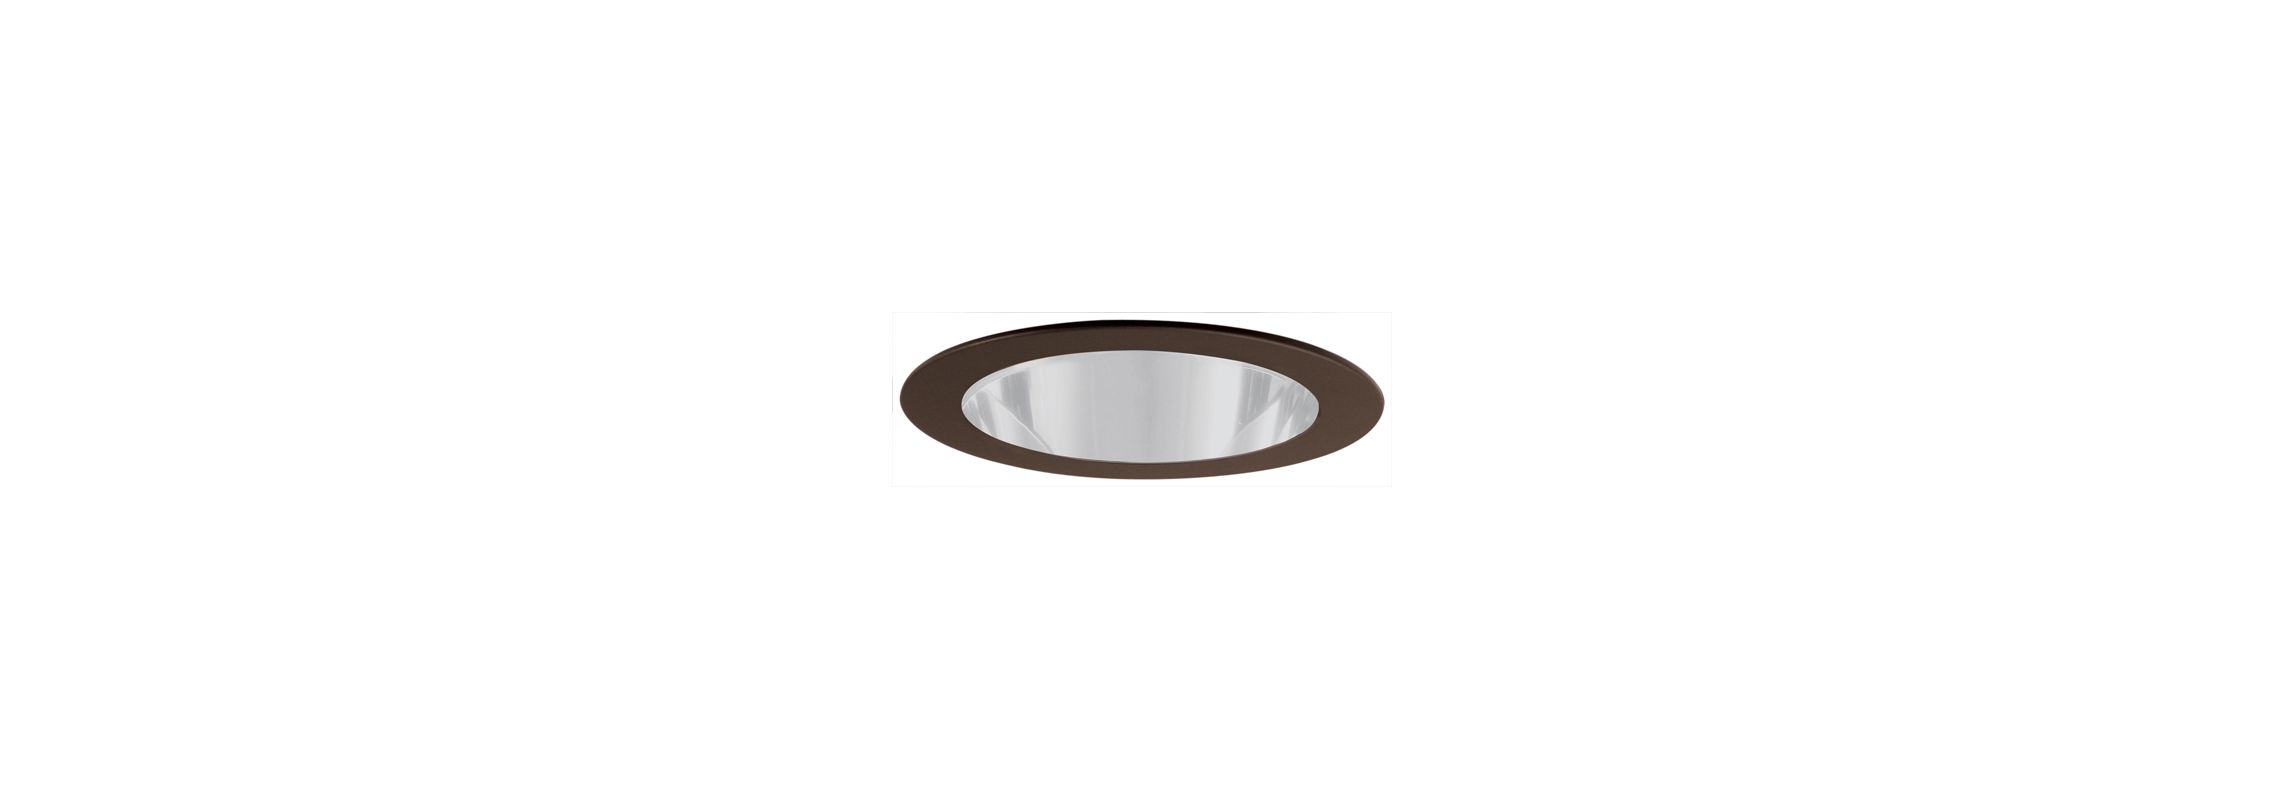 "Elco EL911 4"" CFL Shower Trim with Clear Lens Bronze Recessed Lights"